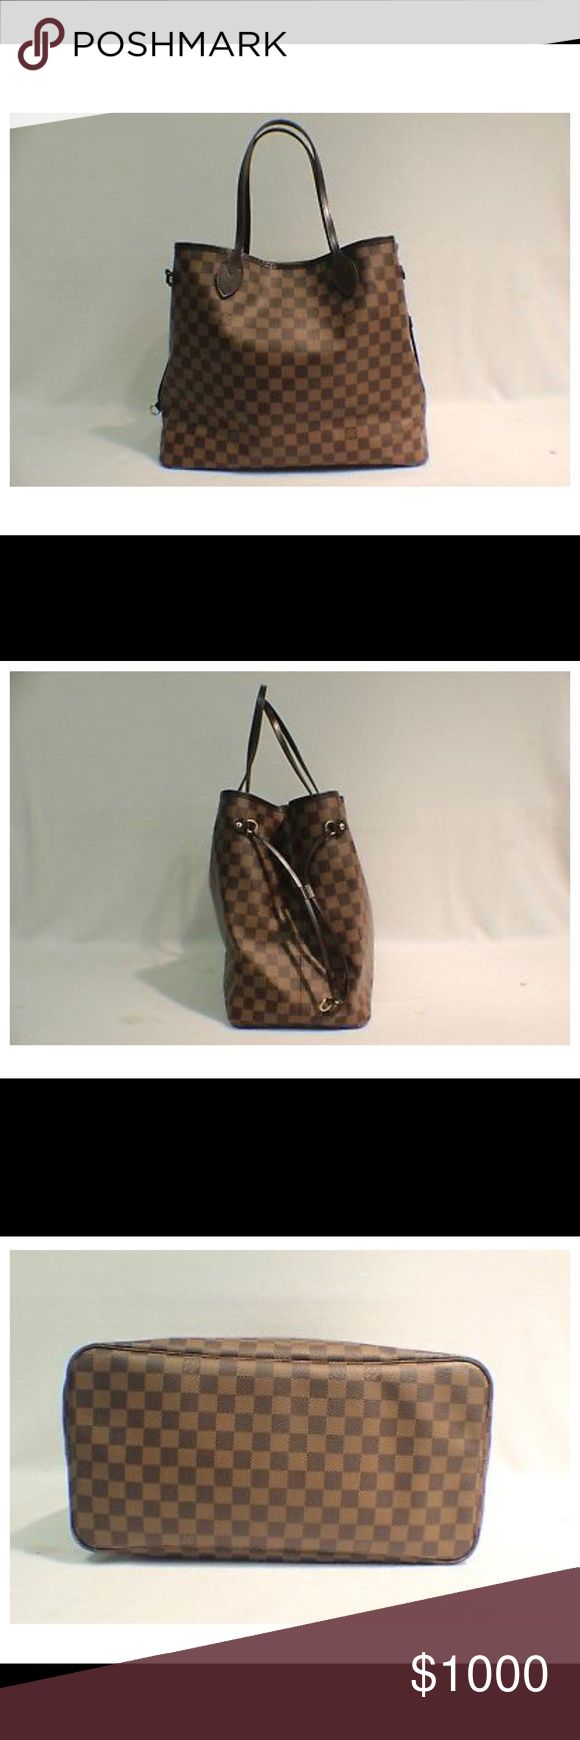 Louis Vuitton Neverfull GM (no pouch) Excellent used condition LV GM Neverfull - only used a handful of times! Comes with receipt. I don't have a Pay Pal account but accept Venmo as payment. Louis Vuitton Bags Shoulder Bags